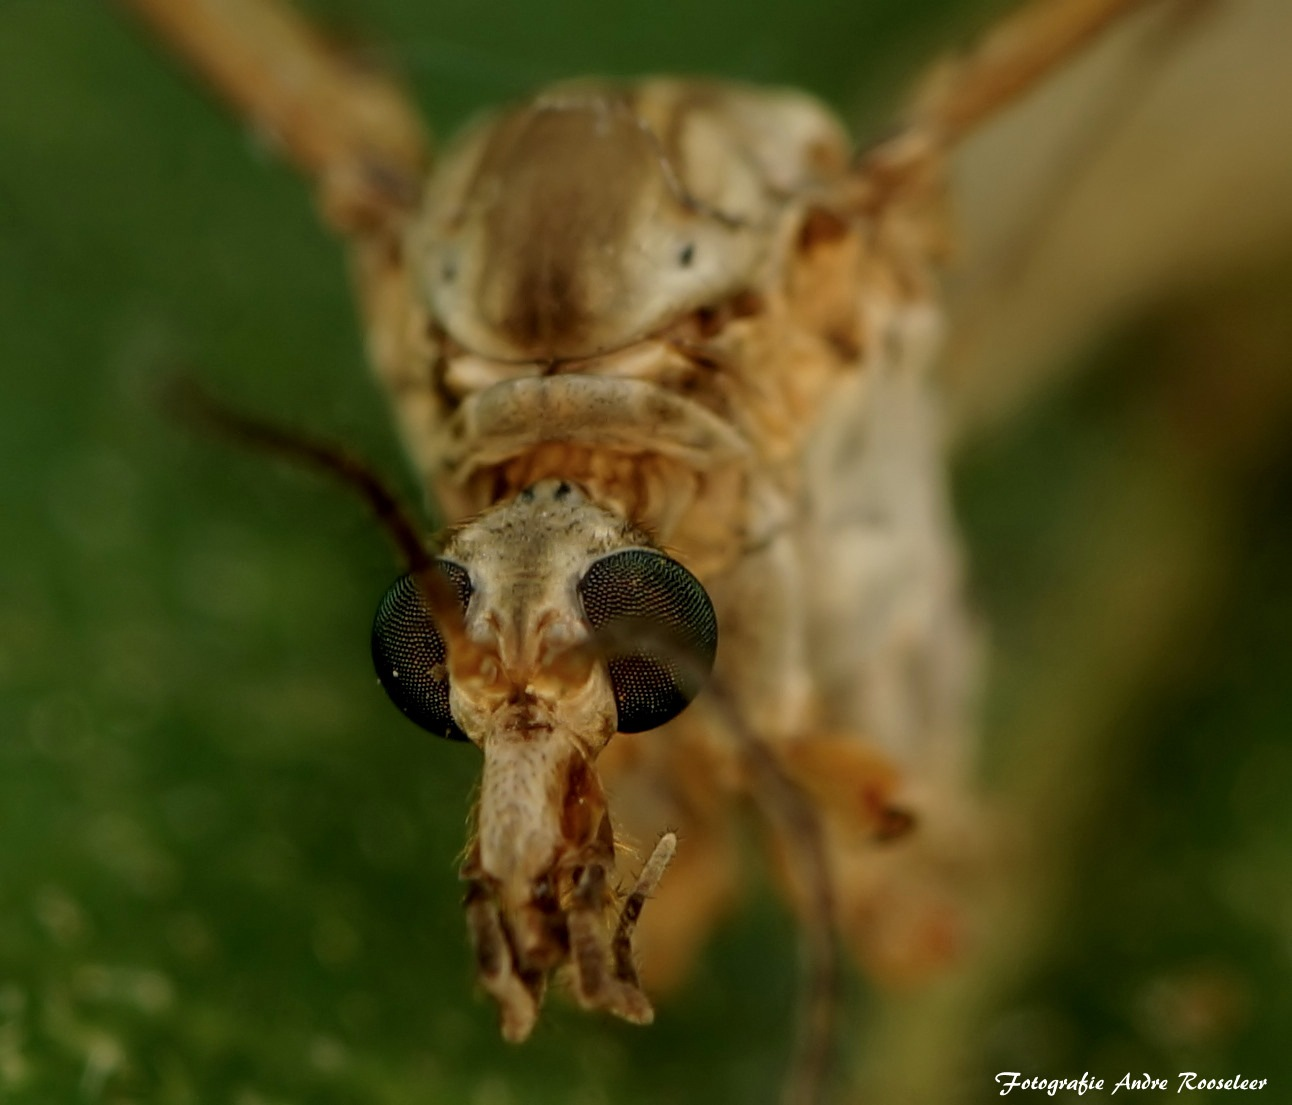 Crane fly      Arthropoda (arthropods)     Class: Insecta (insects)     Order: Diptera (fly and mo by andre.rooseleer